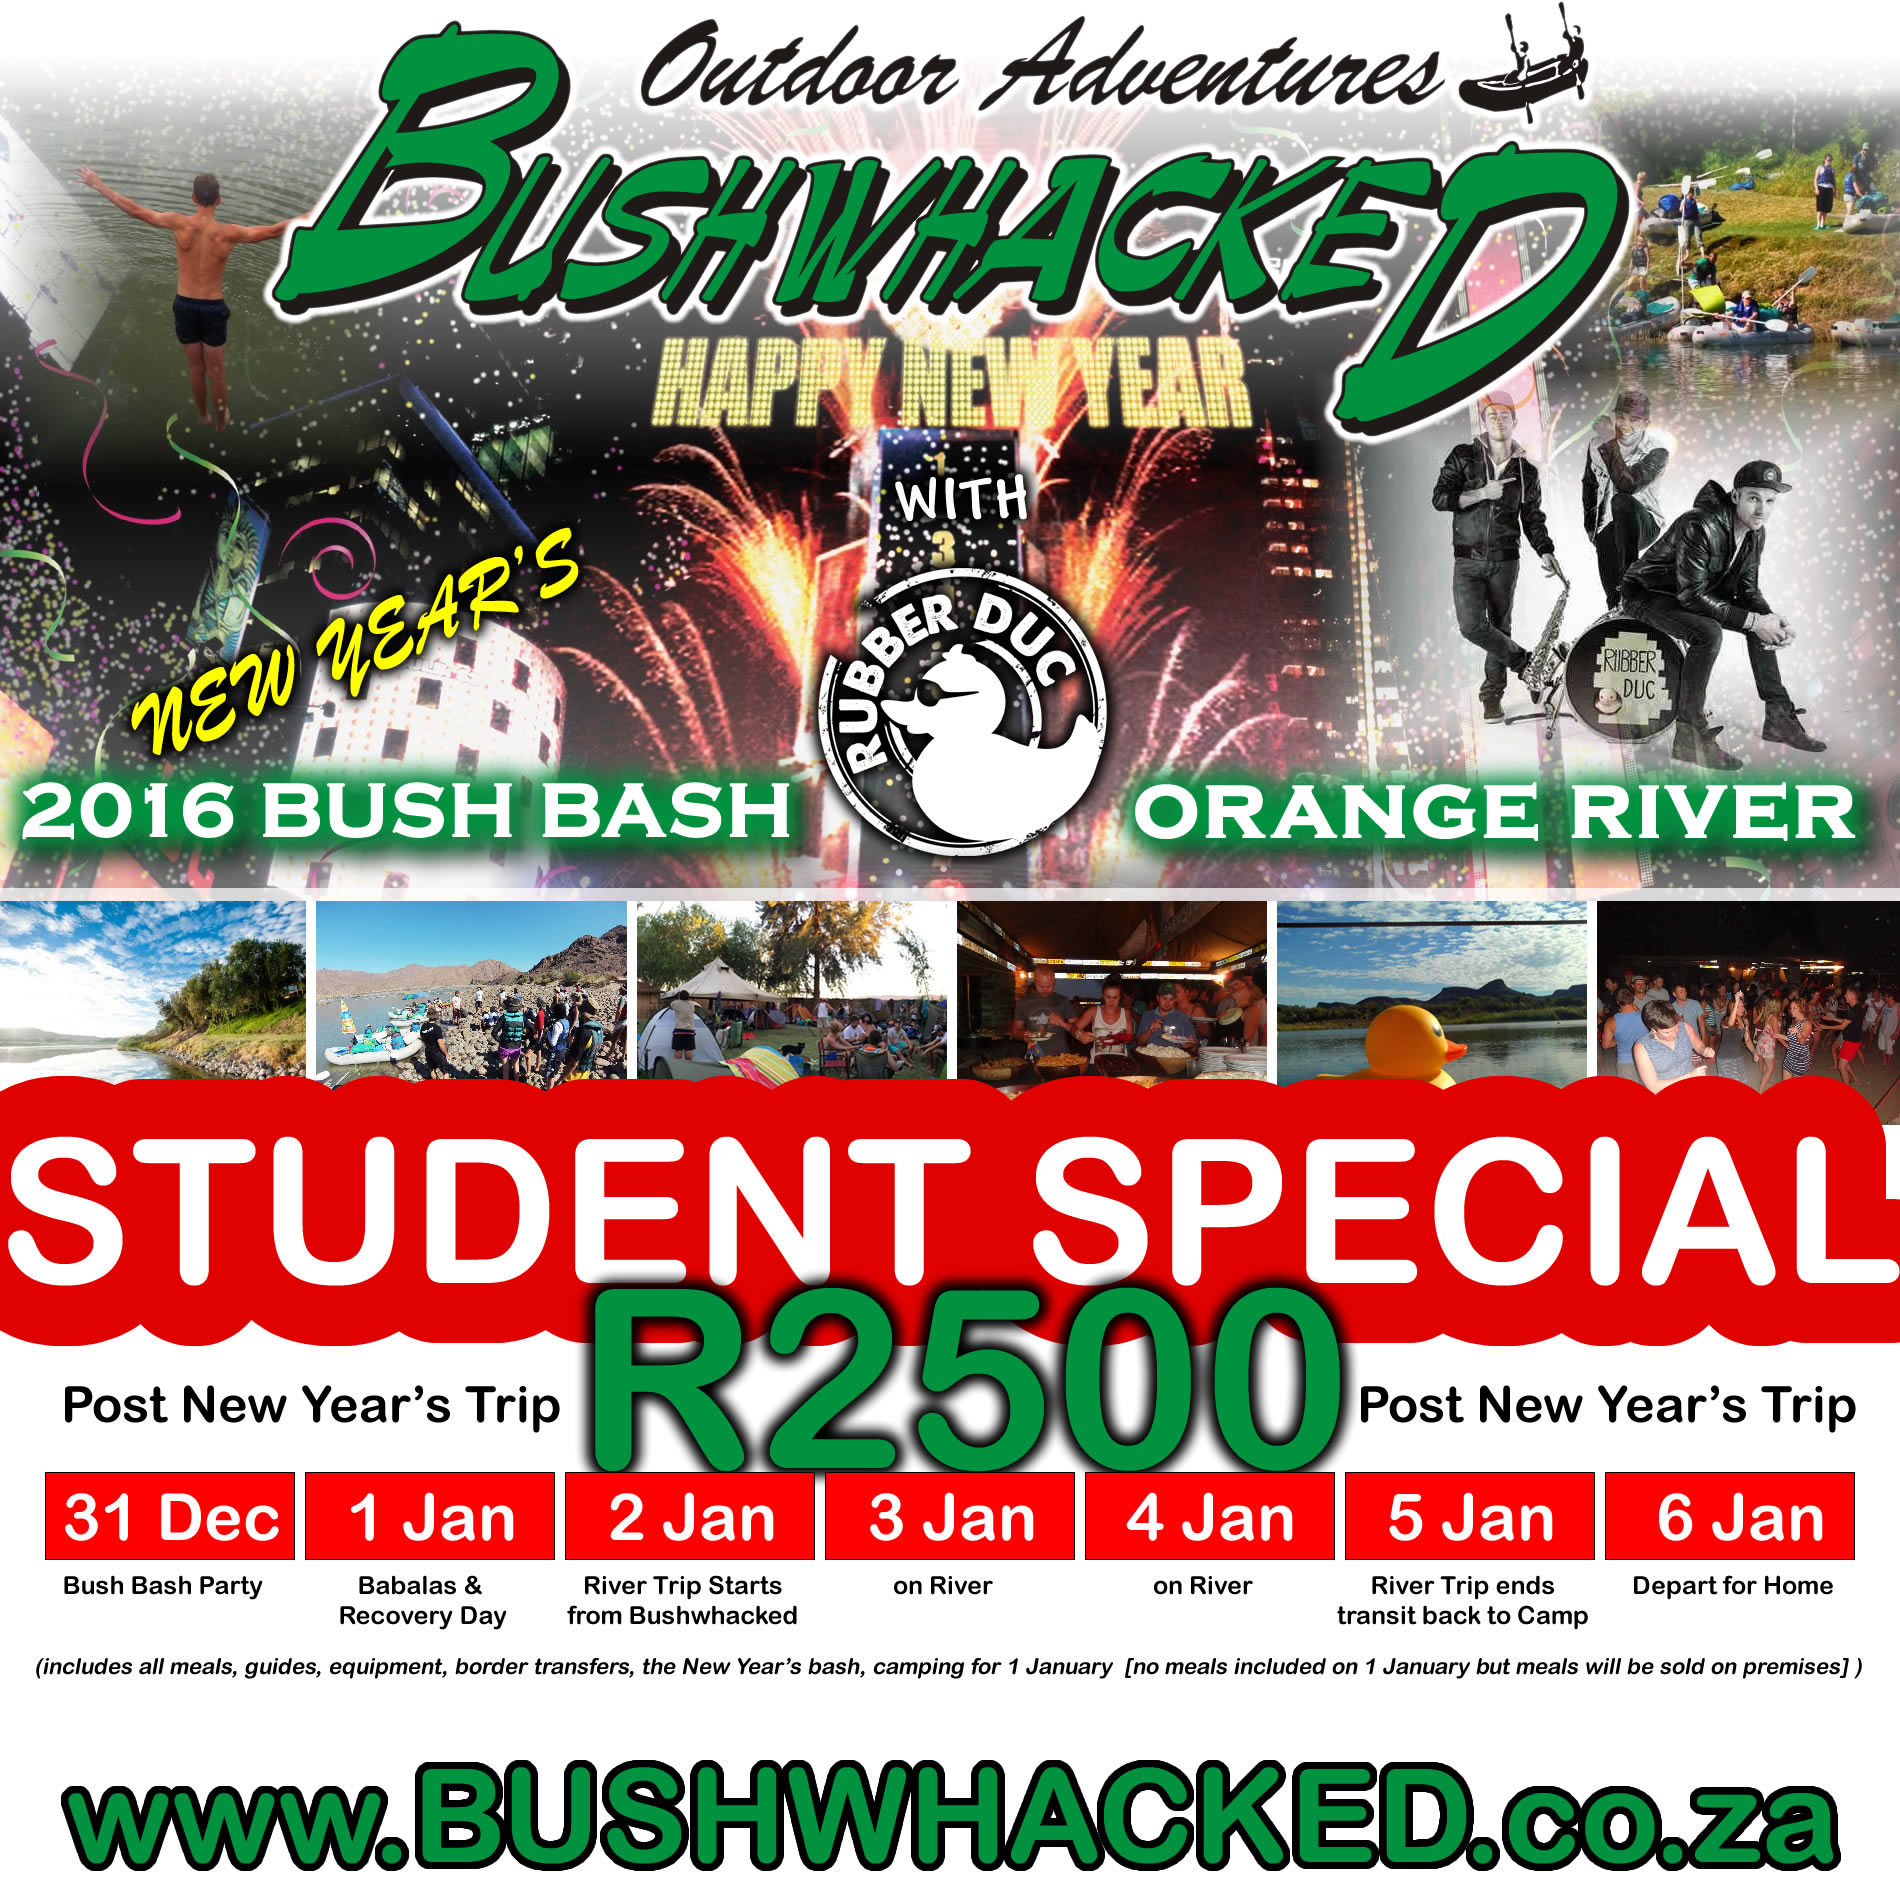 studentspecial